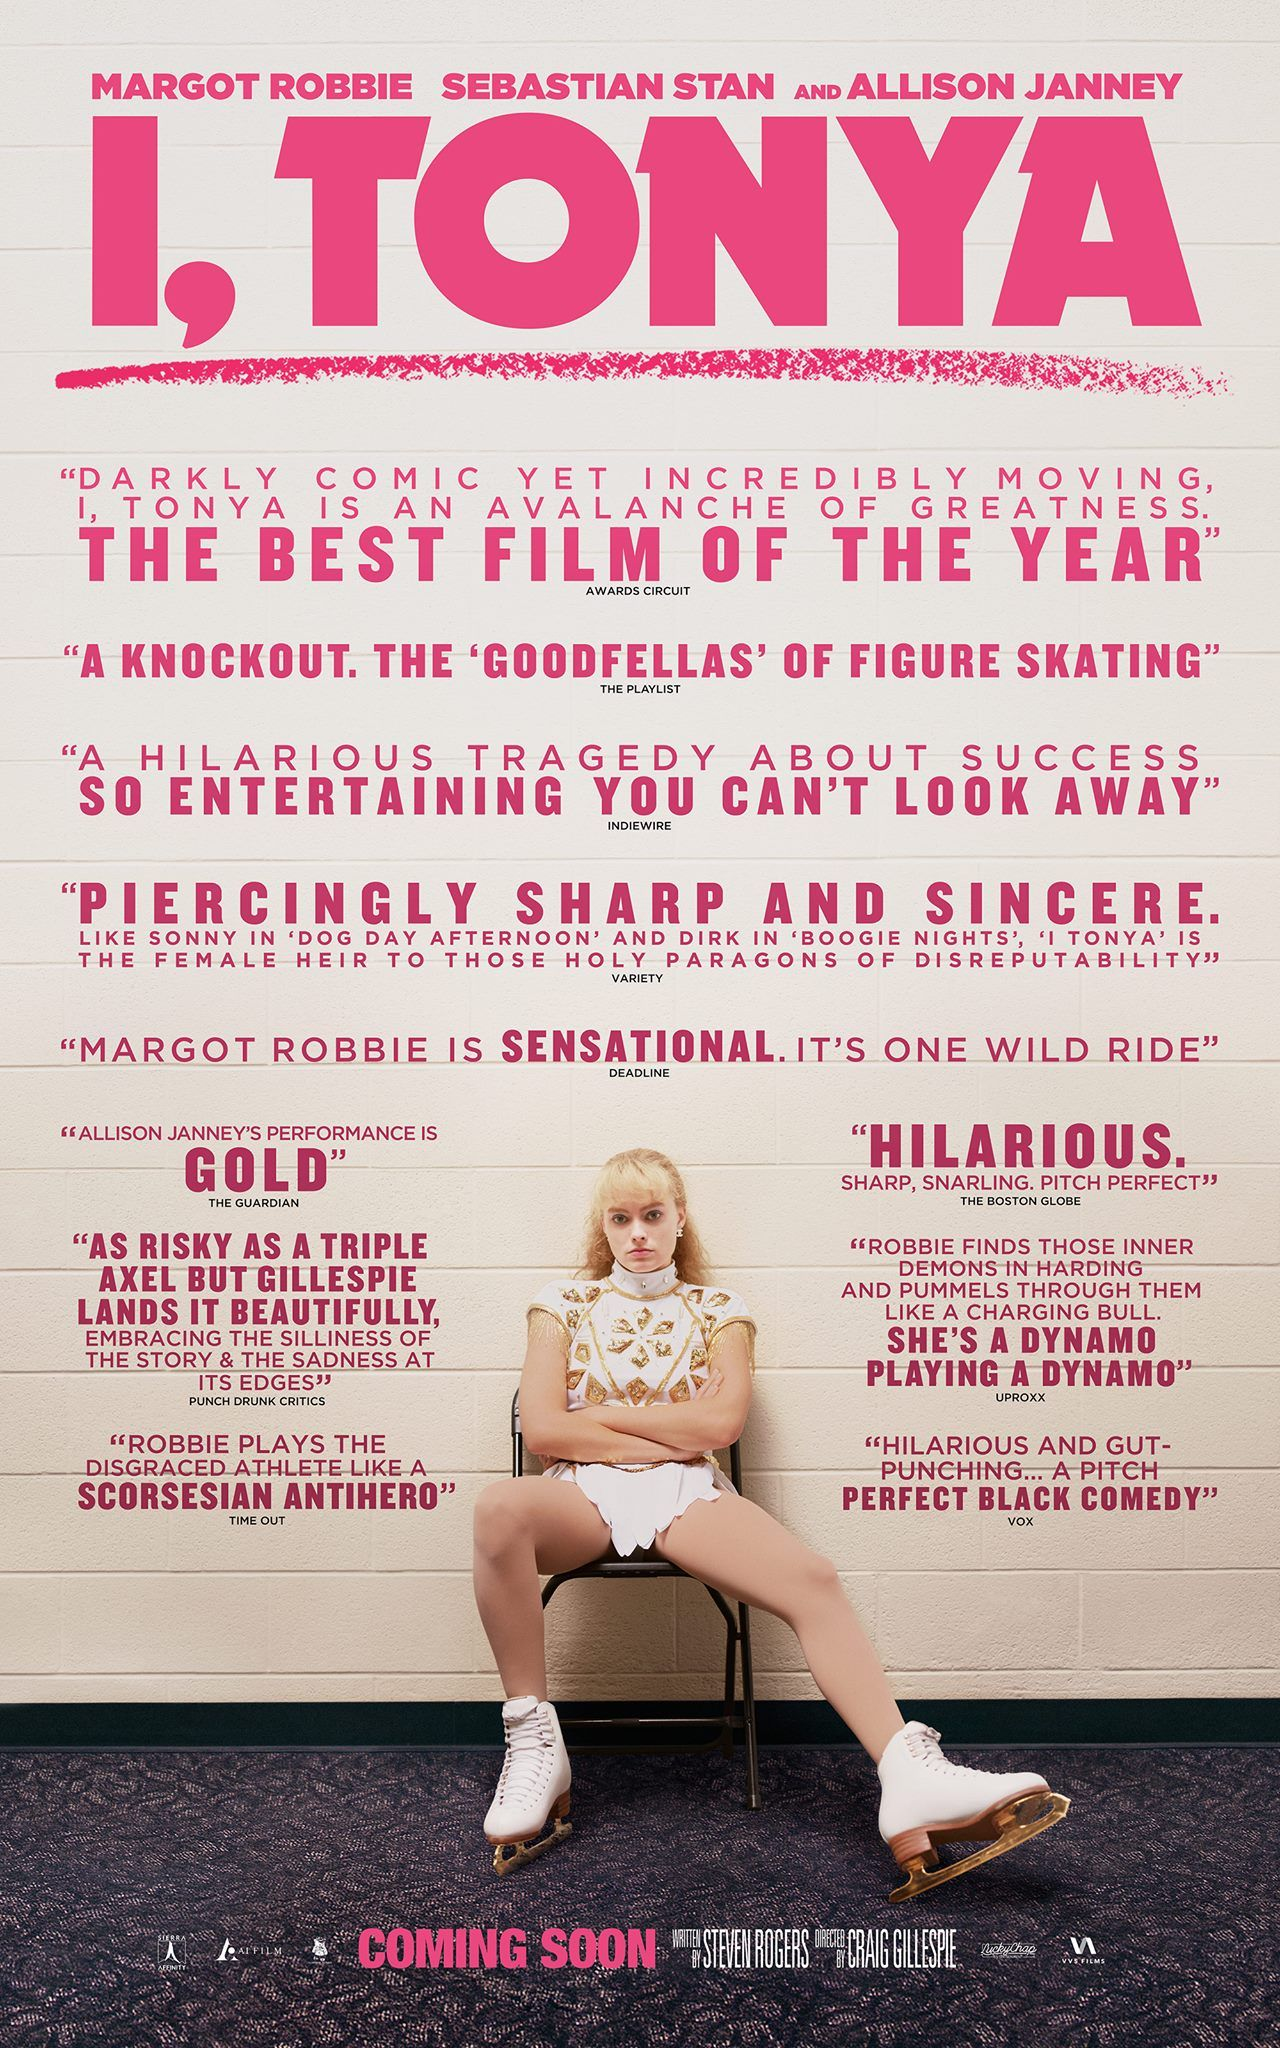 """The critics have spoken, """"I, TONYA is the best film of the year!"""" Don't miss this wickedly dark and funny film starring Margot Robbie as Tonya Harding. Opens Toronto exclusively on December 22, additional cities across Canada January 5th!"""